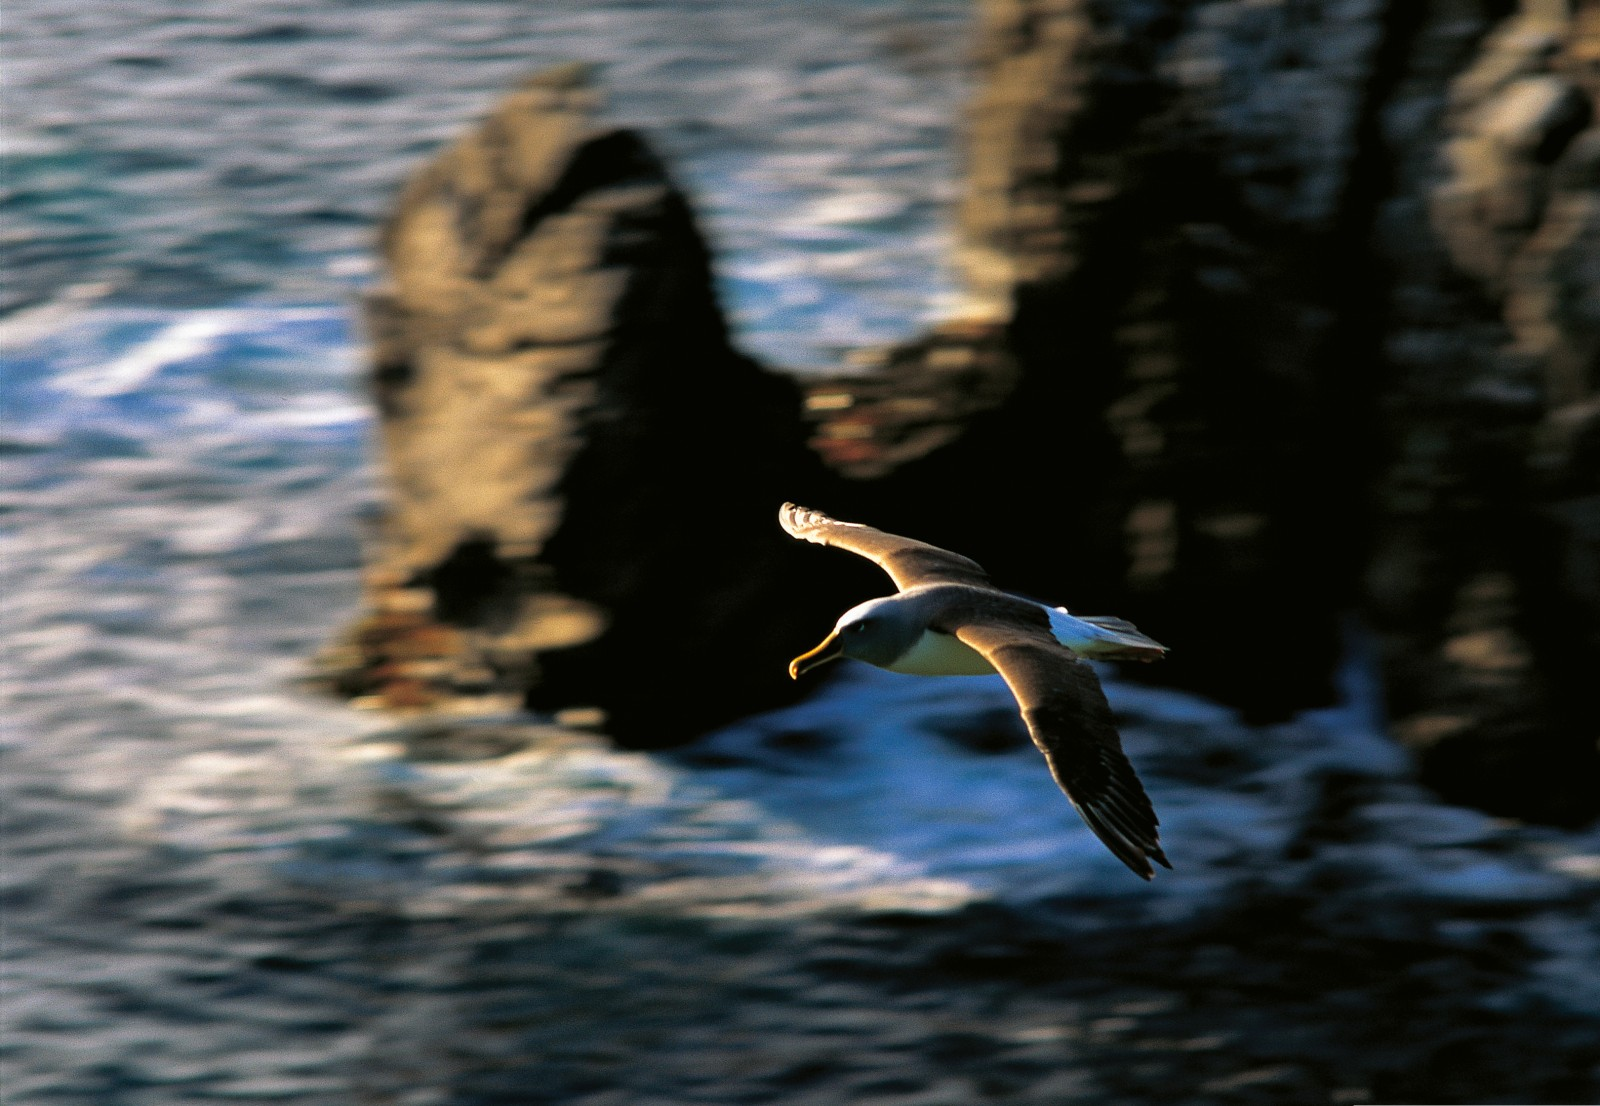 Southern Buller's albatrosses are consummate aeronauts, capable of flying at speeds approaching 100 km/h (given a strong tail wind) and covering thousands of kilometres in a single trip. One bird, tracked flying from New Zealand to Chile, covered the distance of around 10,000 km in 10 days. The wings, which span up to 2.2 metres, are surprisingly delicate, hence the danger posed by fishing vessels. If an albatross flies into a trawl wire at speed, it will almost certainly break a wing bone and crash into the sea.